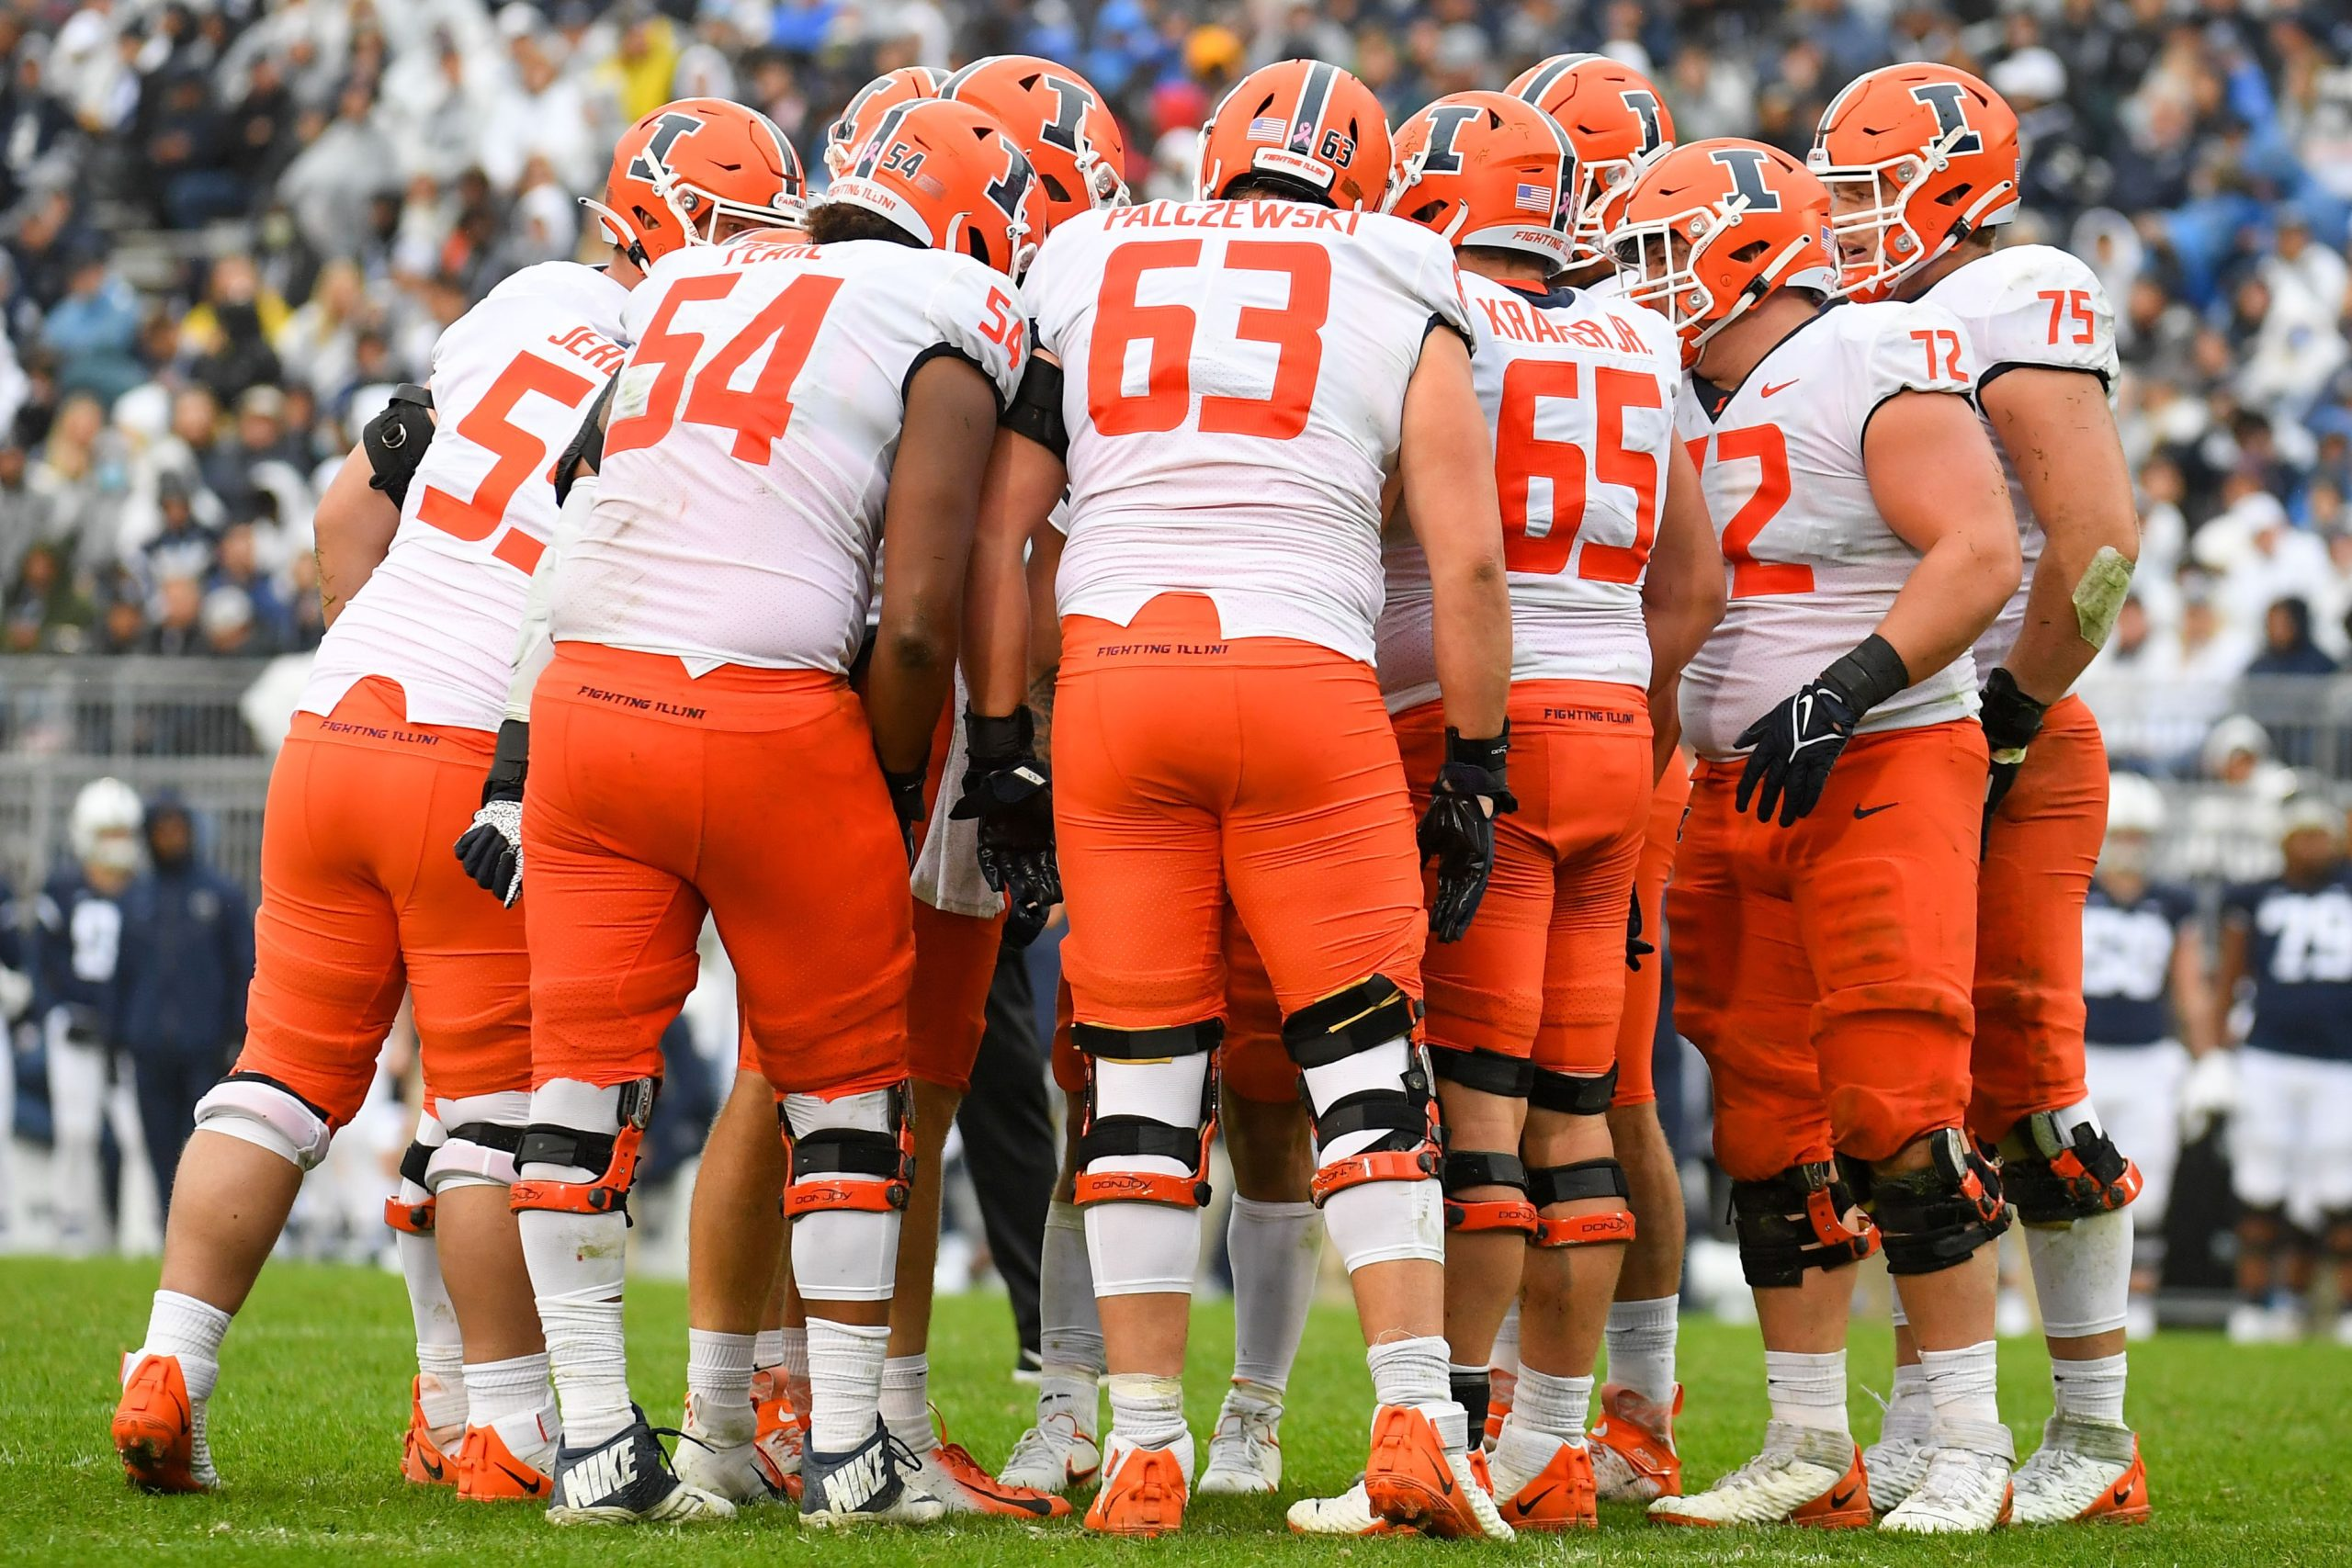 Illini Football Feature on 'Barge Package' of 9 OL